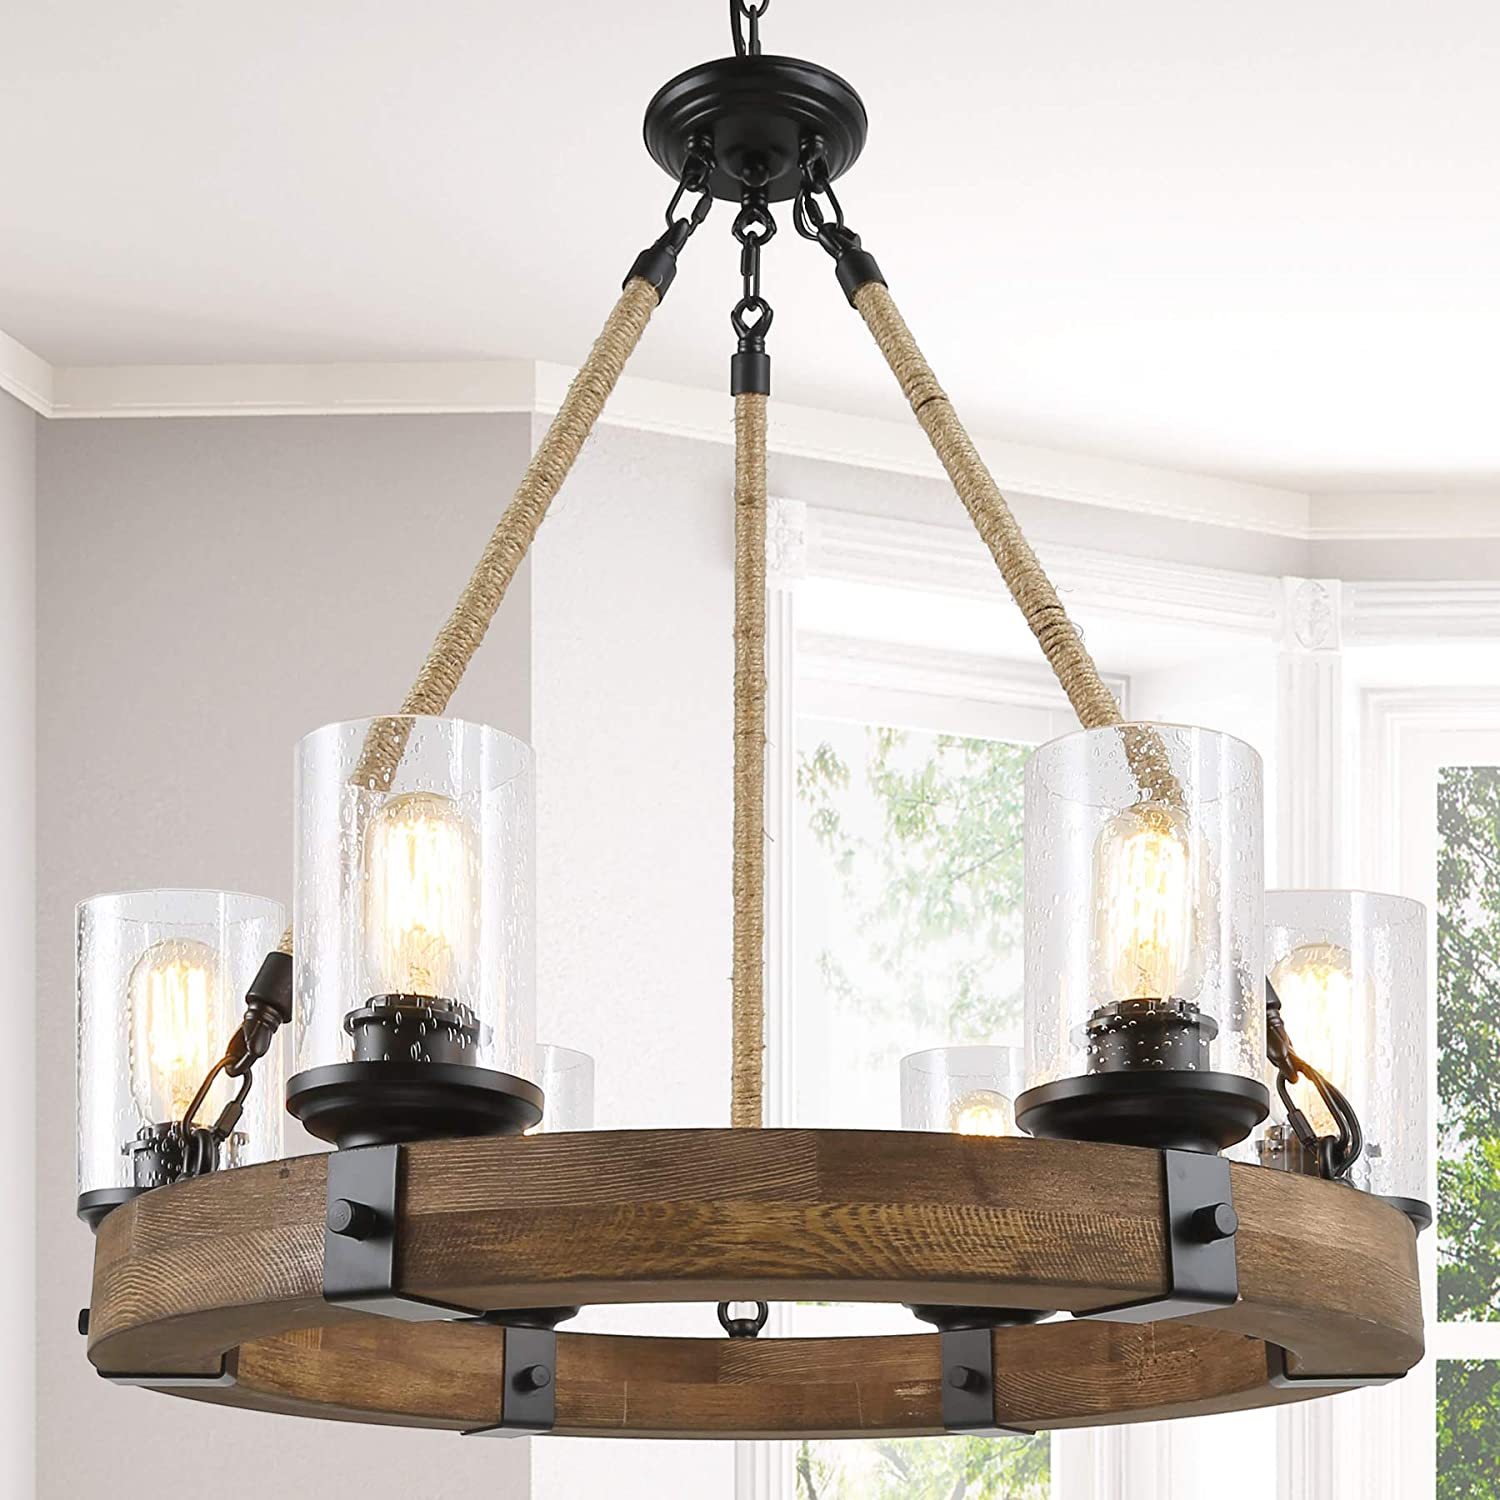 Farmhouse Chandelier For Dining Rooms 6 Light Wagon Wheel Chandelier Hemp Rope Wood Chandelier With Seeded Glass Shade 25 Dia